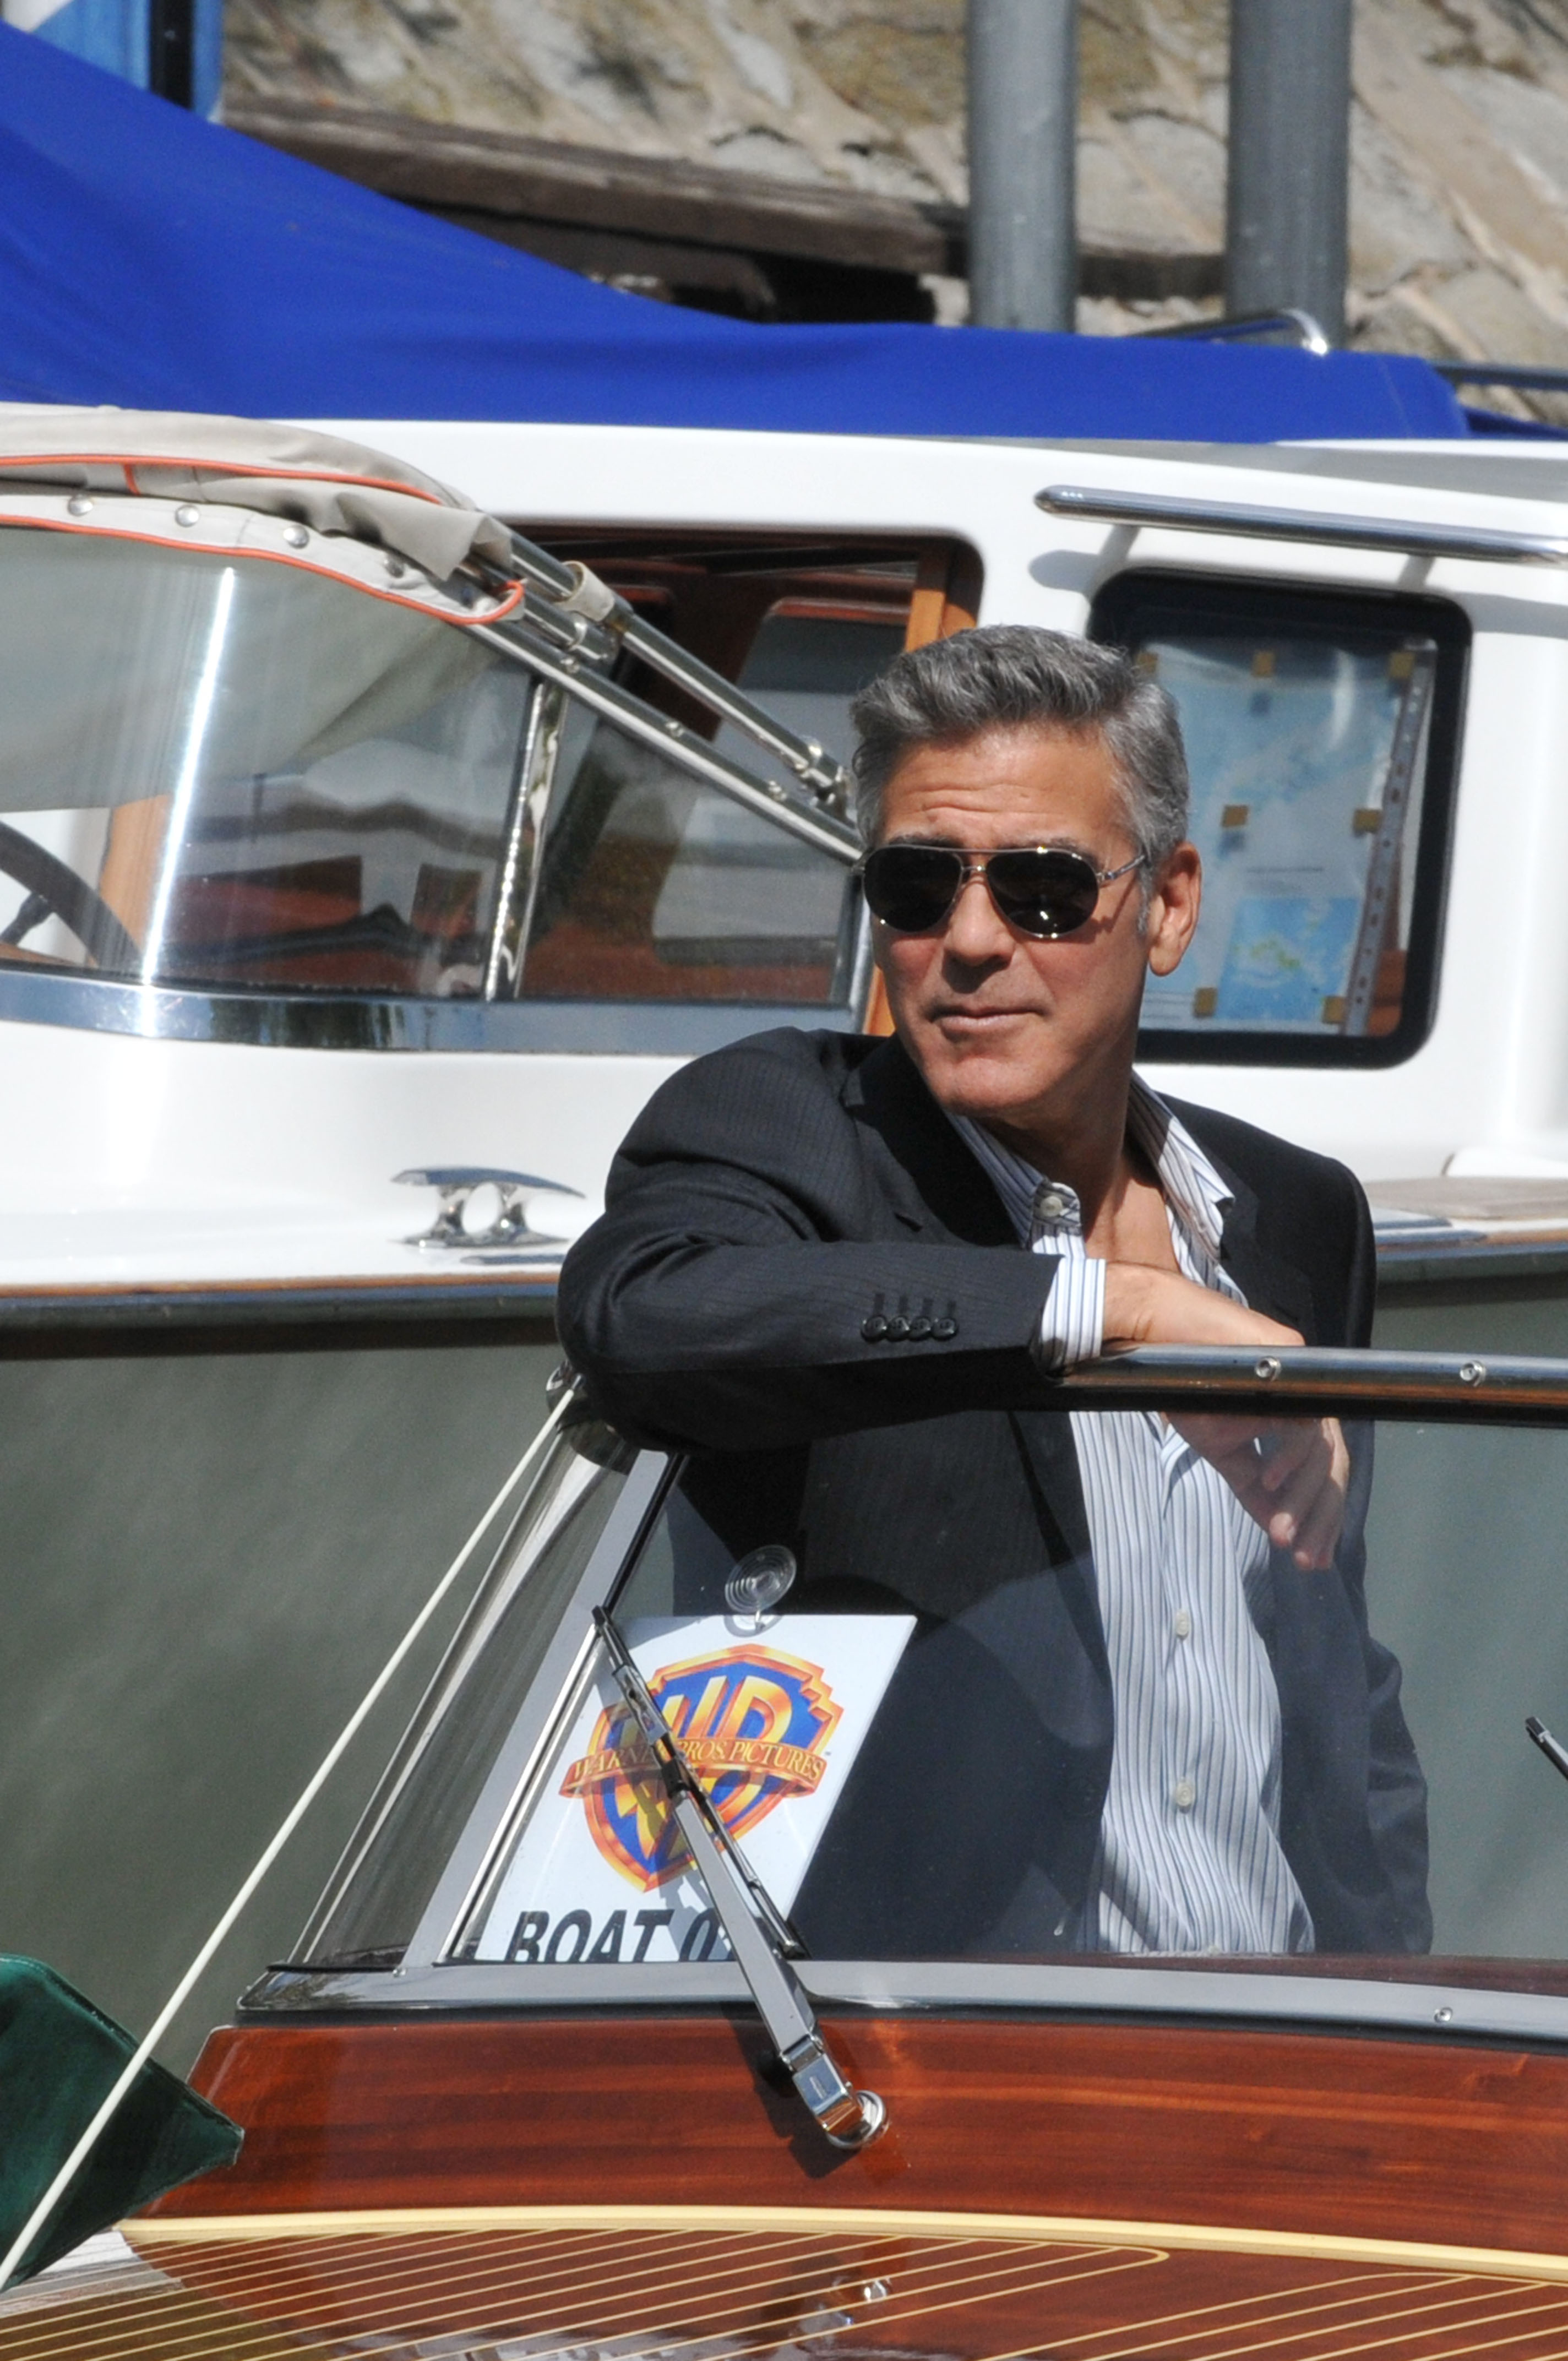 Well Played, Sandra Bullock and George Clooney